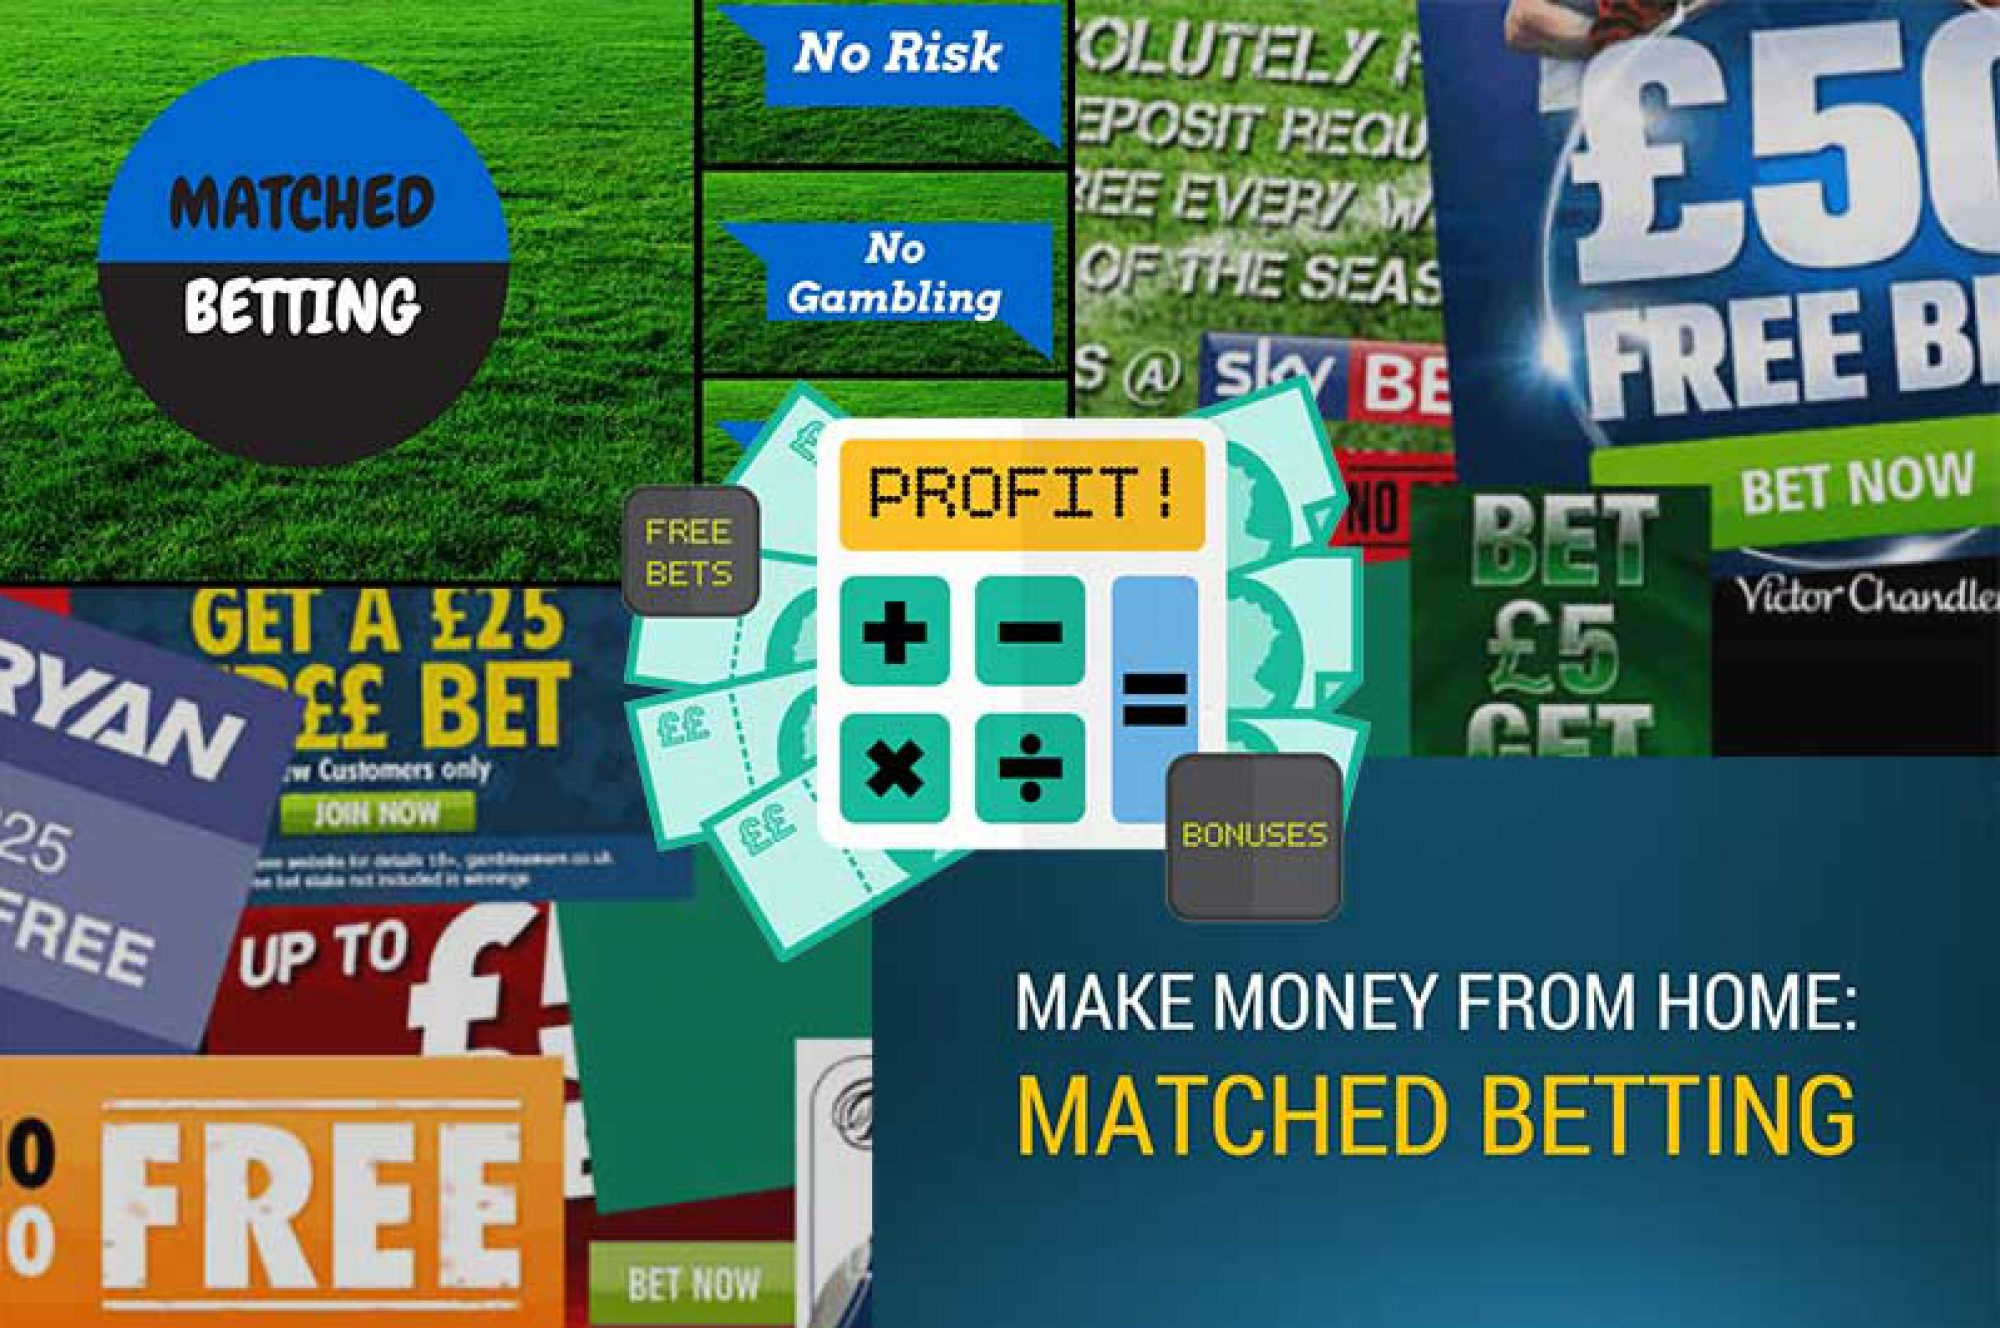 1 no risk matched betting scam